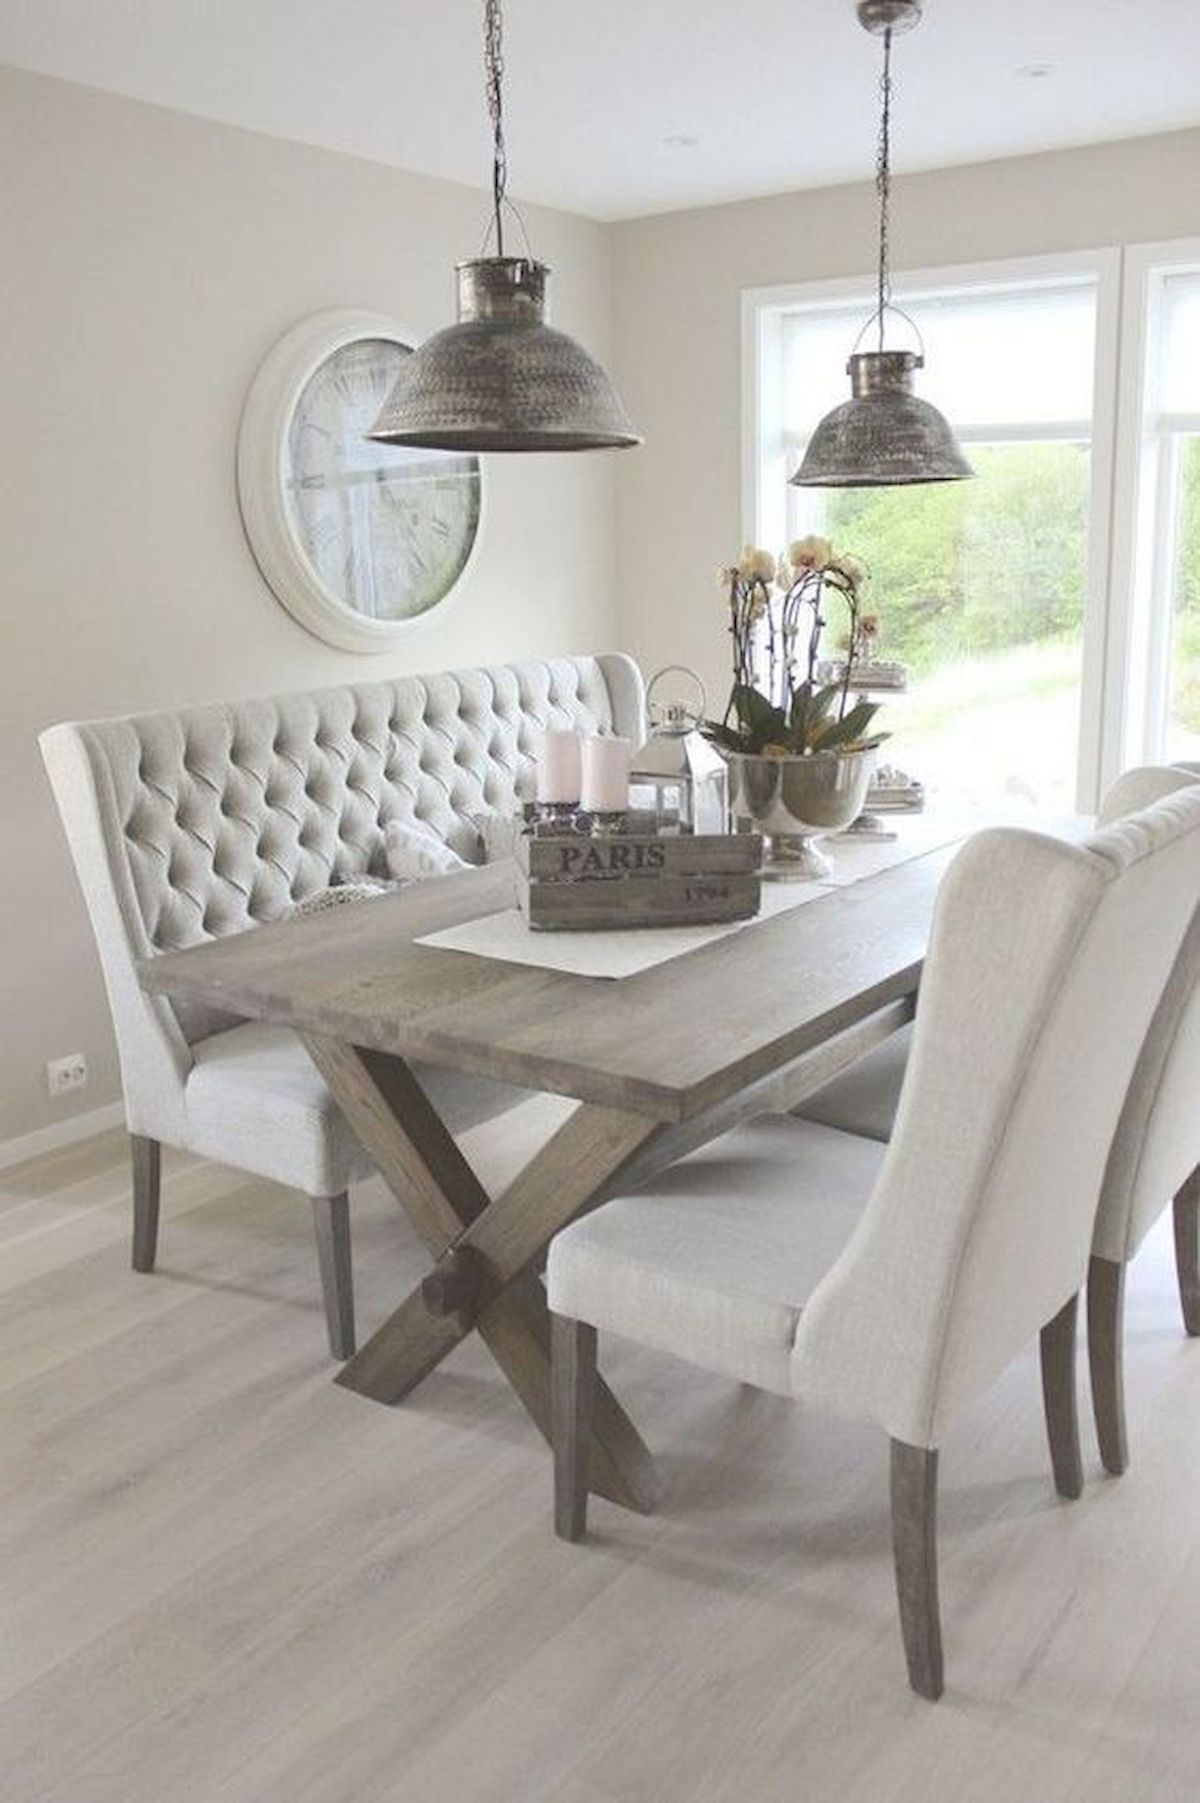 55 Stunning DIY Projects Furniture Tables Dining Rooms Design Ideas images